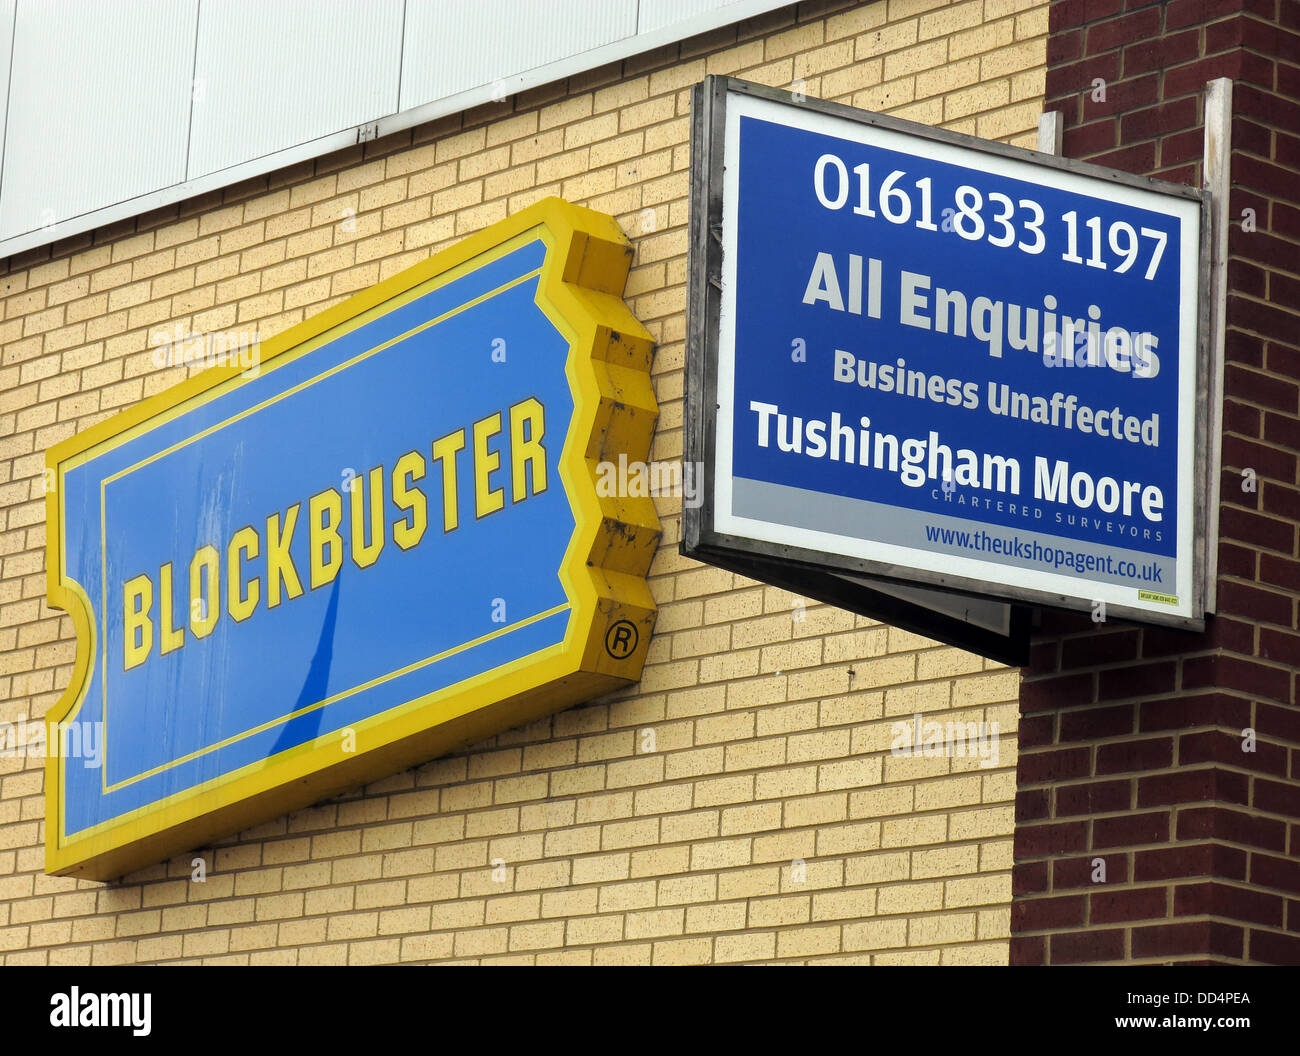 GoTonySmith,@HotpixUK,Tony,Smith,UK,GB,Great,Britain,United,Kingdom,English,British,England,problem,with,problem with,issue with,Buy Pictures of,Buy Images Of,Images of,Stock Images,Tony Smith,United Kingdom,Great Britain,British Isles,retail sector,Blockbuster Video,Warrington,Town Centre,Cheshire,North West England,WA1,For Sale,bankrupt,liquidation,internet,mail-order,brand,logo,Blockbuster sign